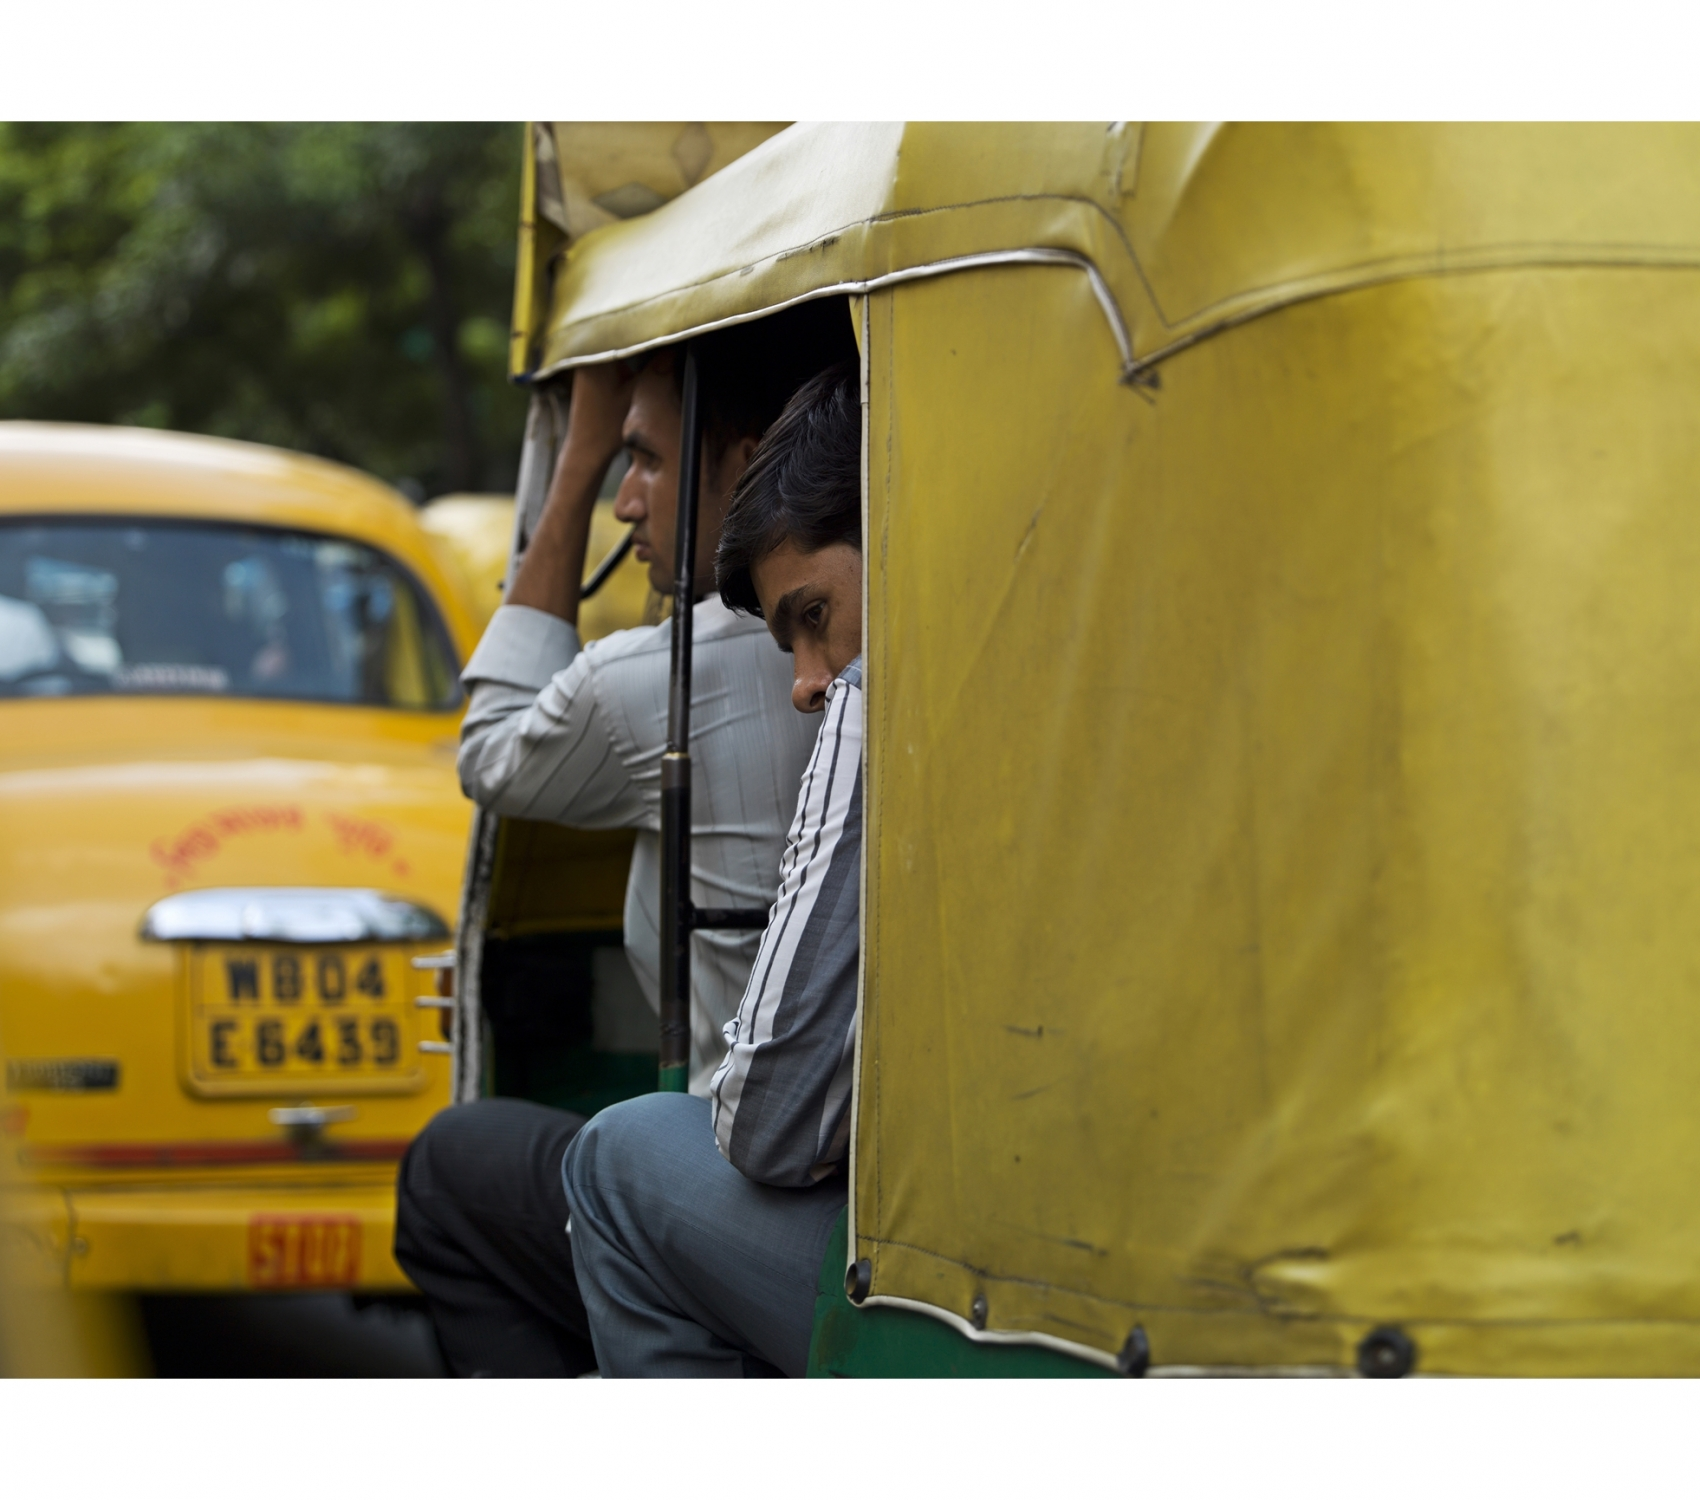 steffen_lachmann_storie_shadow_over_calcutta_1 web